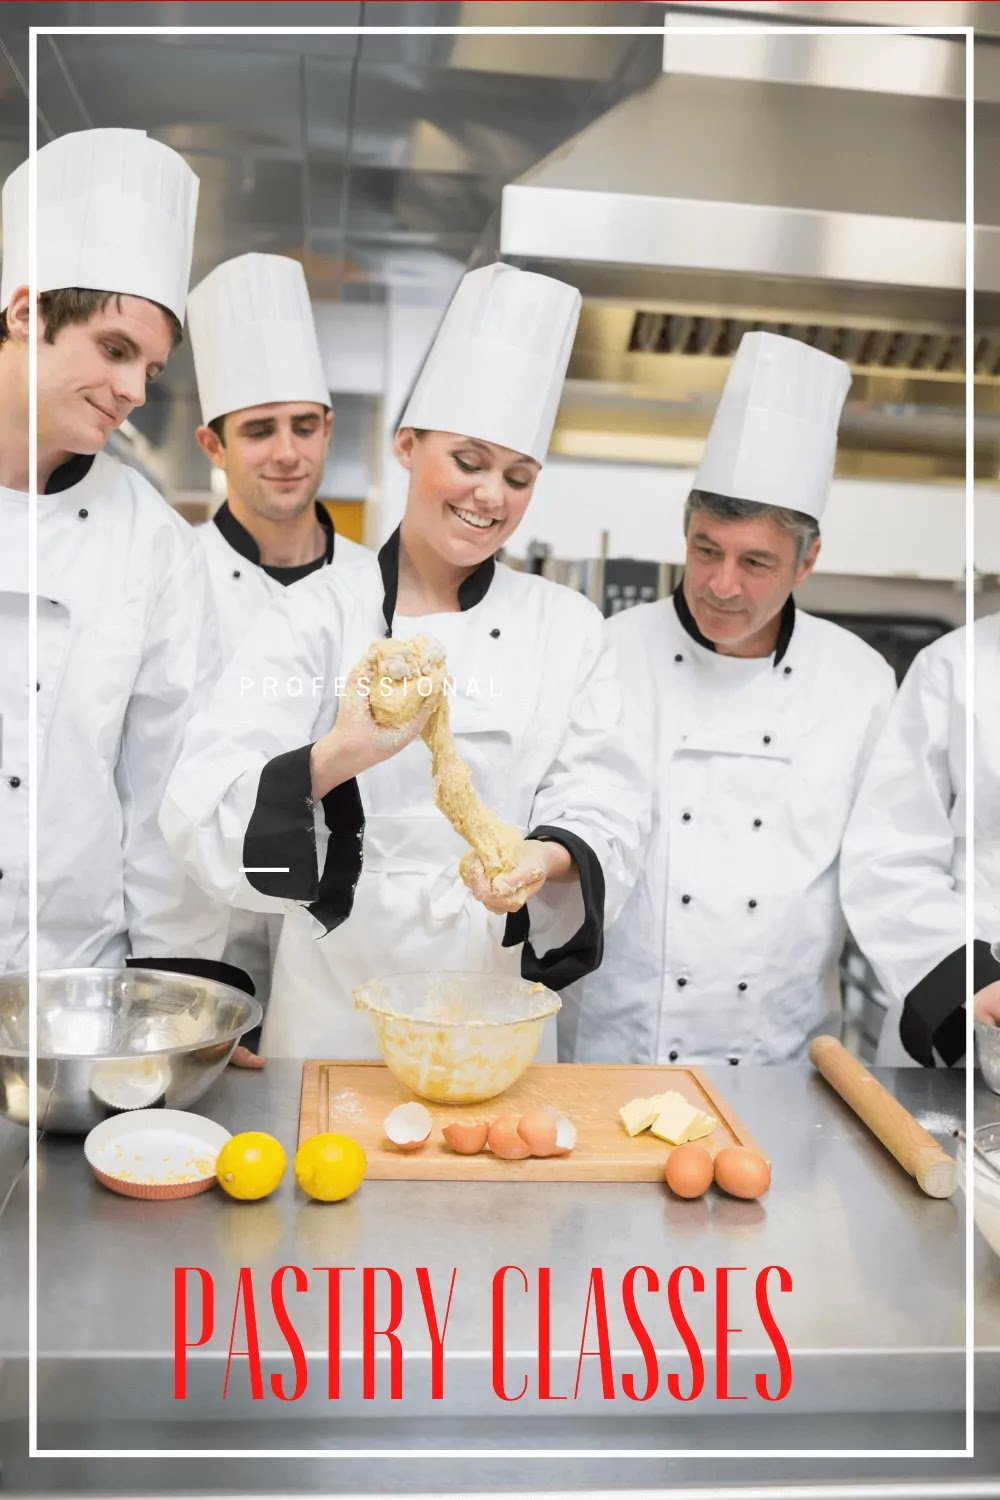 4 pastry chefs serving lessons, a table with eggs and cooking supplies